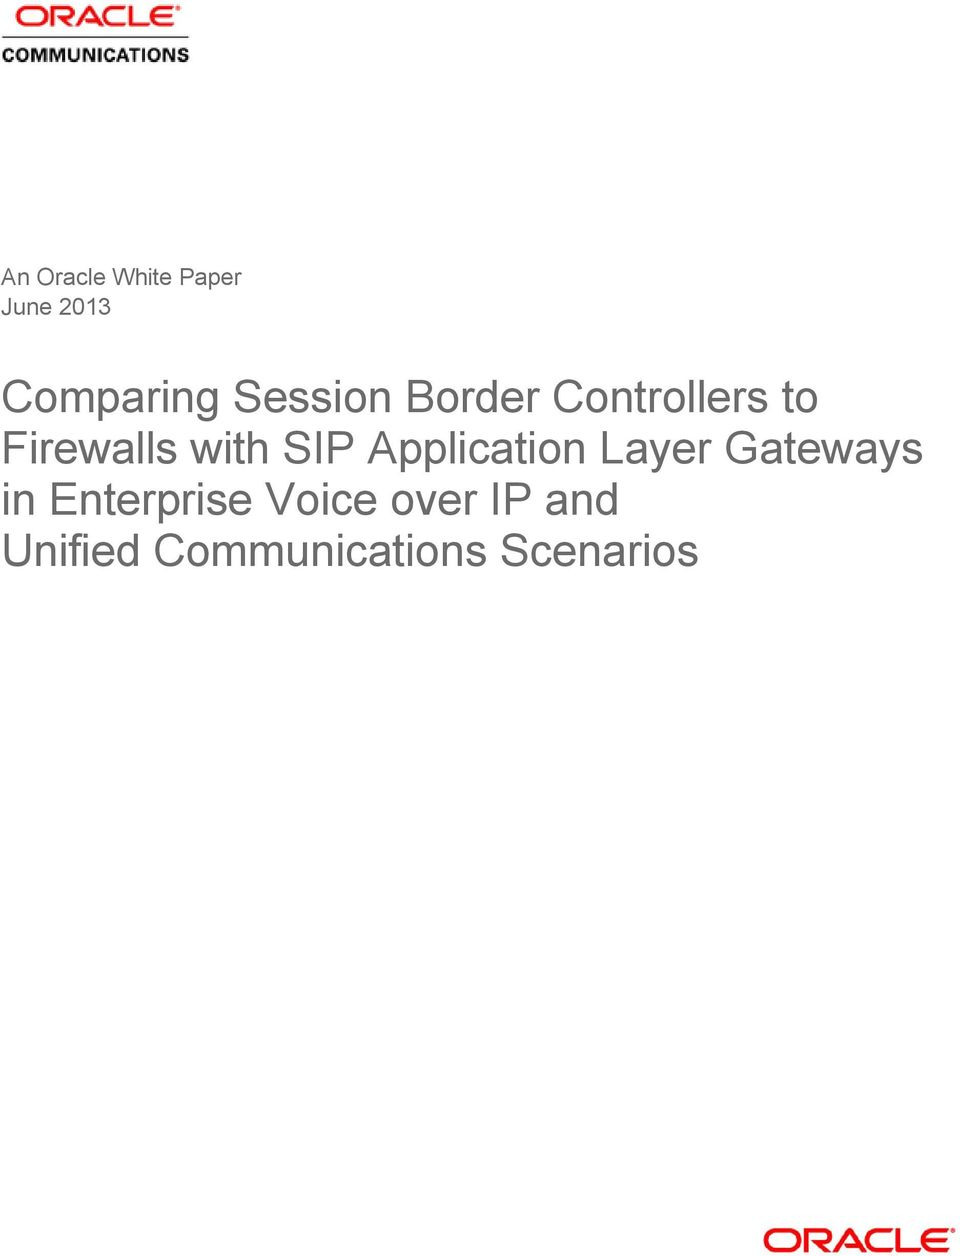 SIP Application Layer Gateways in Enterprise